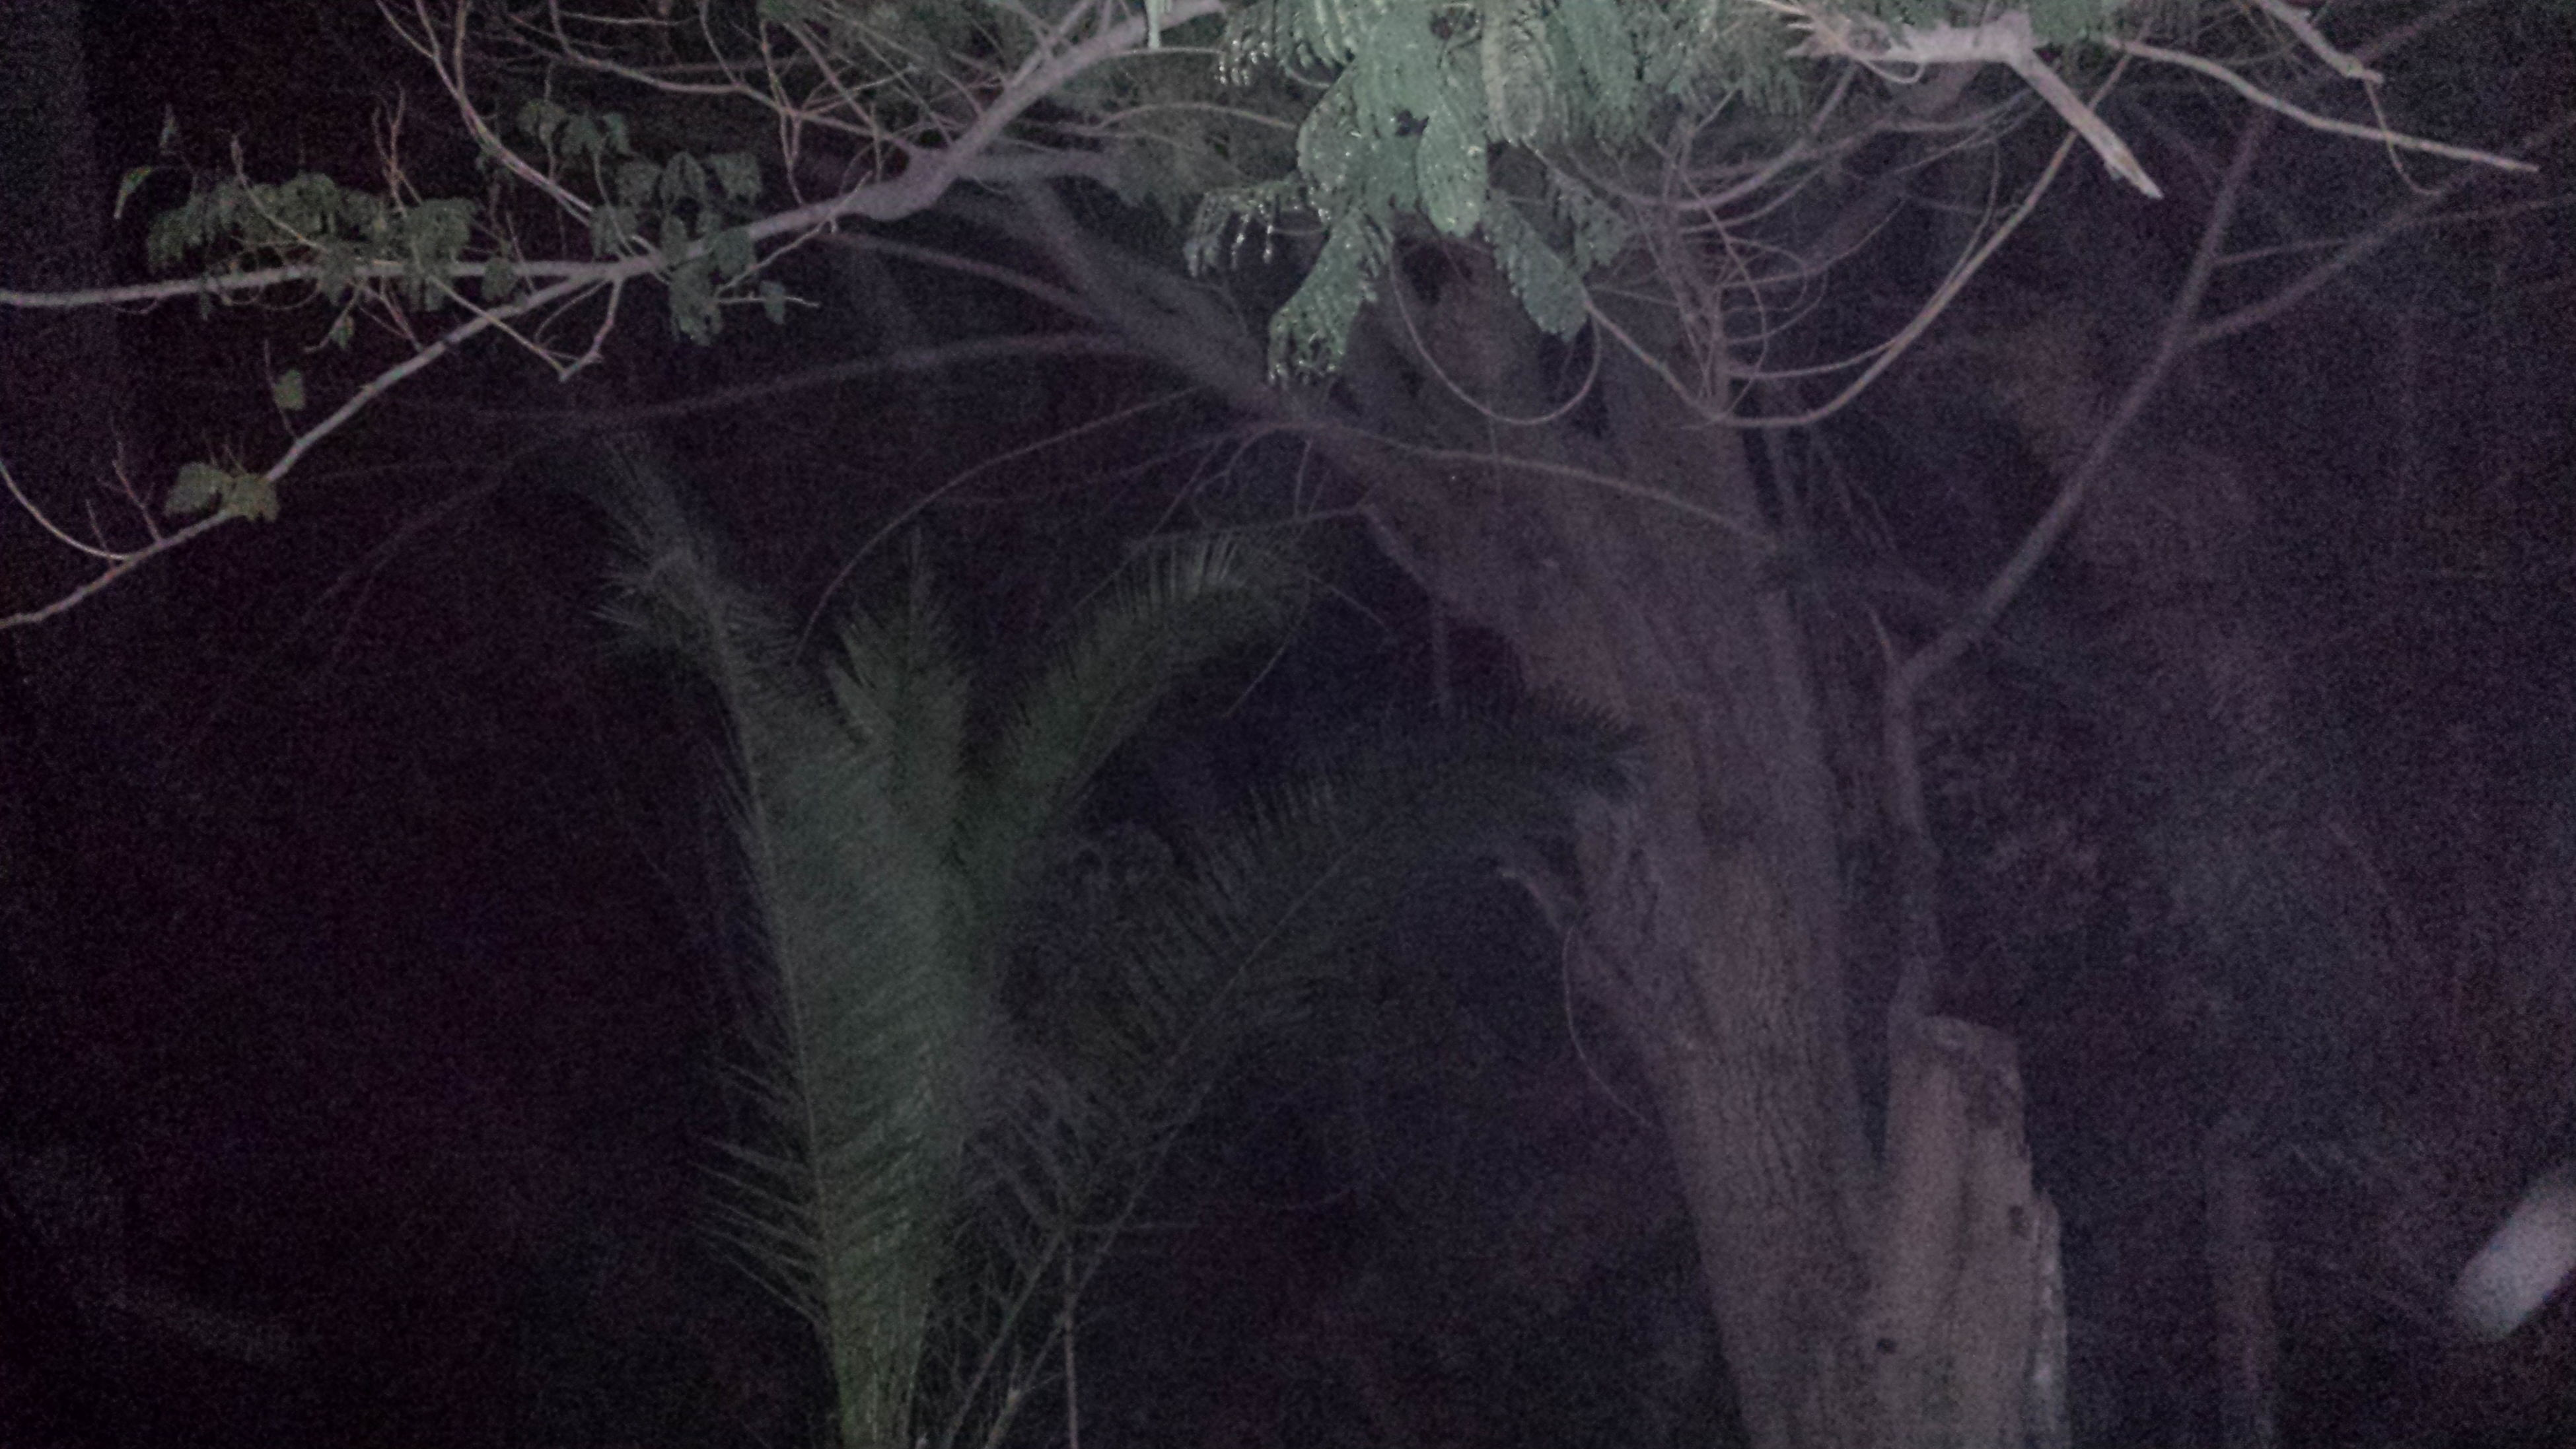 high angle view, growth, nature, plant, night, branch, leaf, tranquility, backgrounds, no people, dark, close-up, outdoors, full frame, beauty in nature, tree, forest, textured